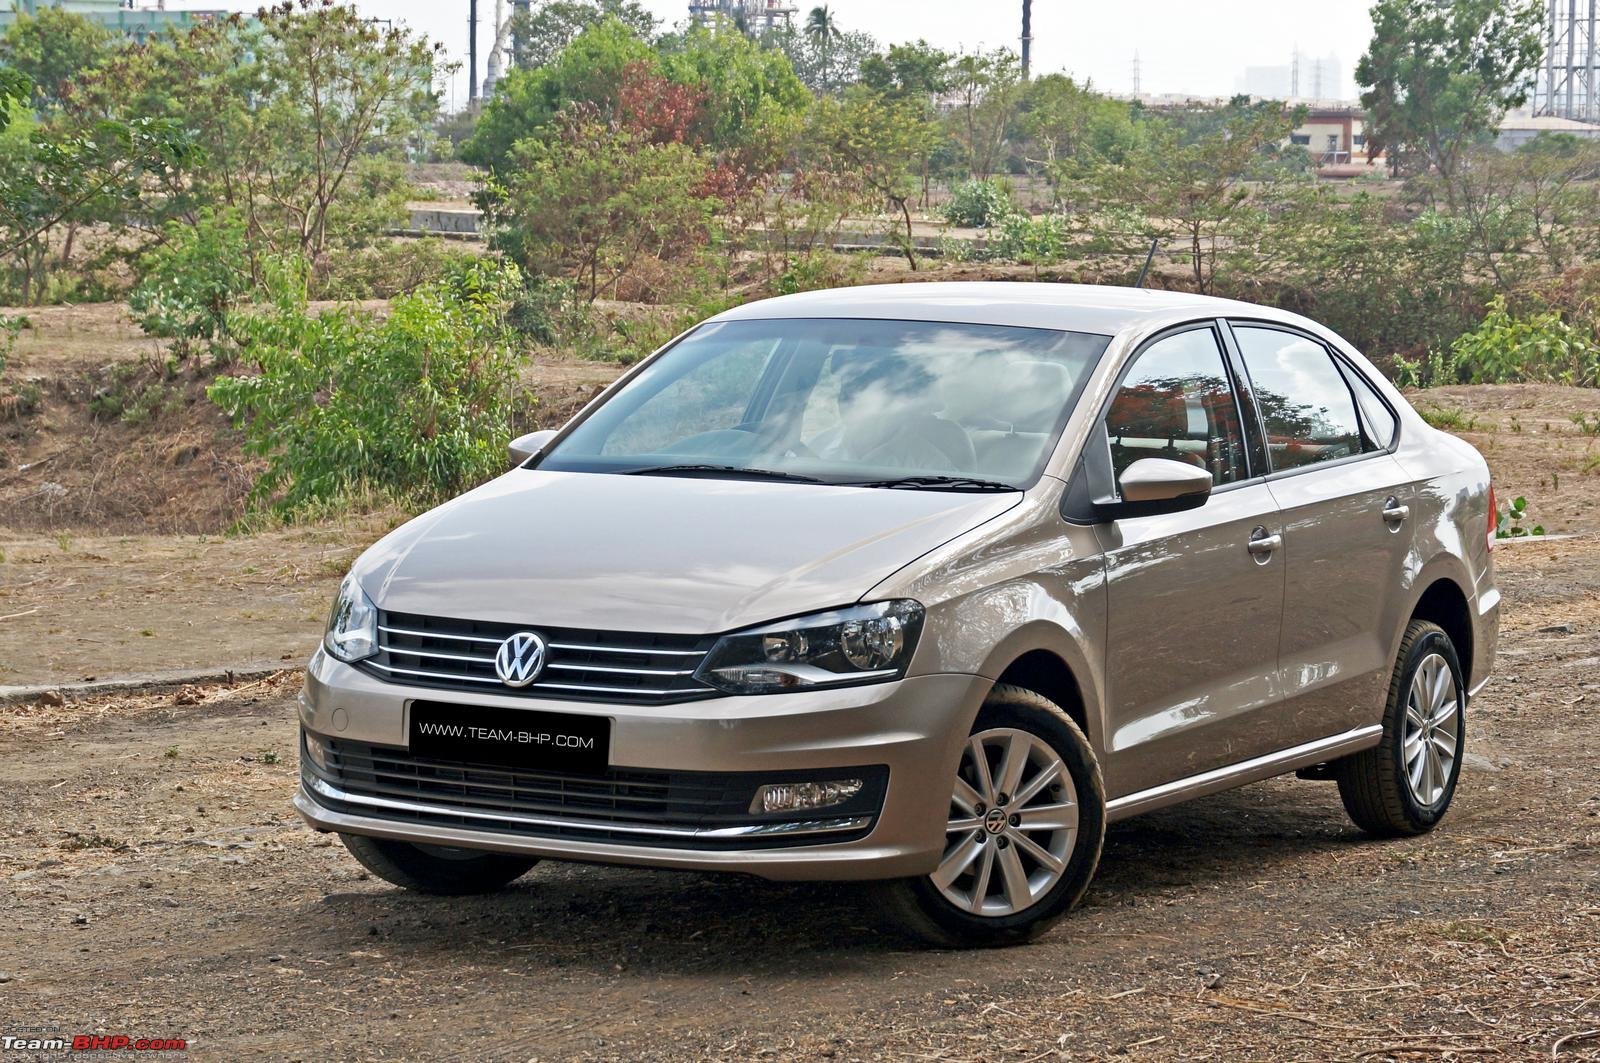 2015 Volkswagen Vento Facelift A Close Look Team Bhp